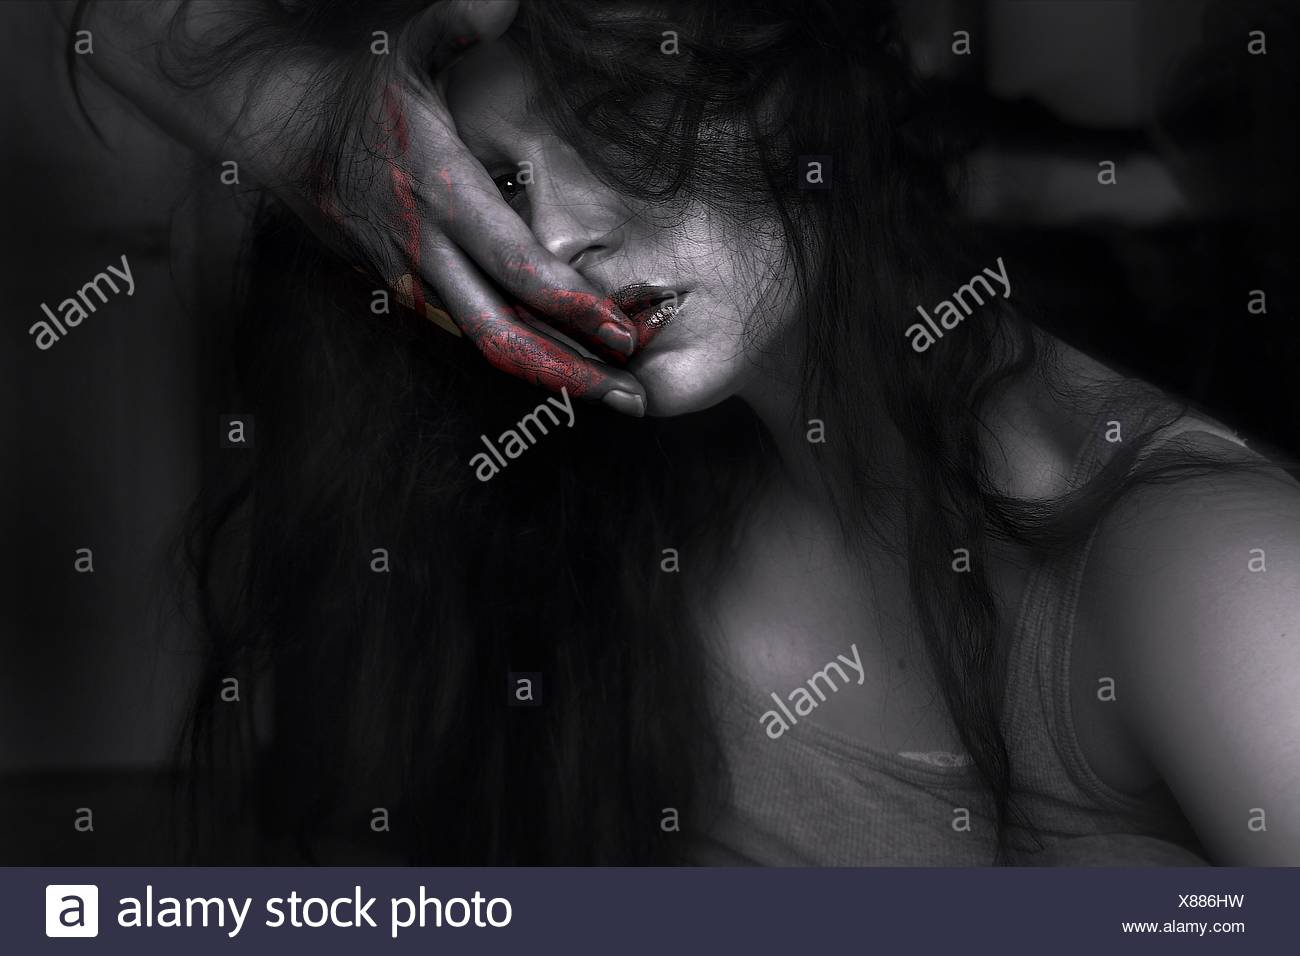 Portrait Of Woman With Red Paint On Hand Touching Face - Stock Image